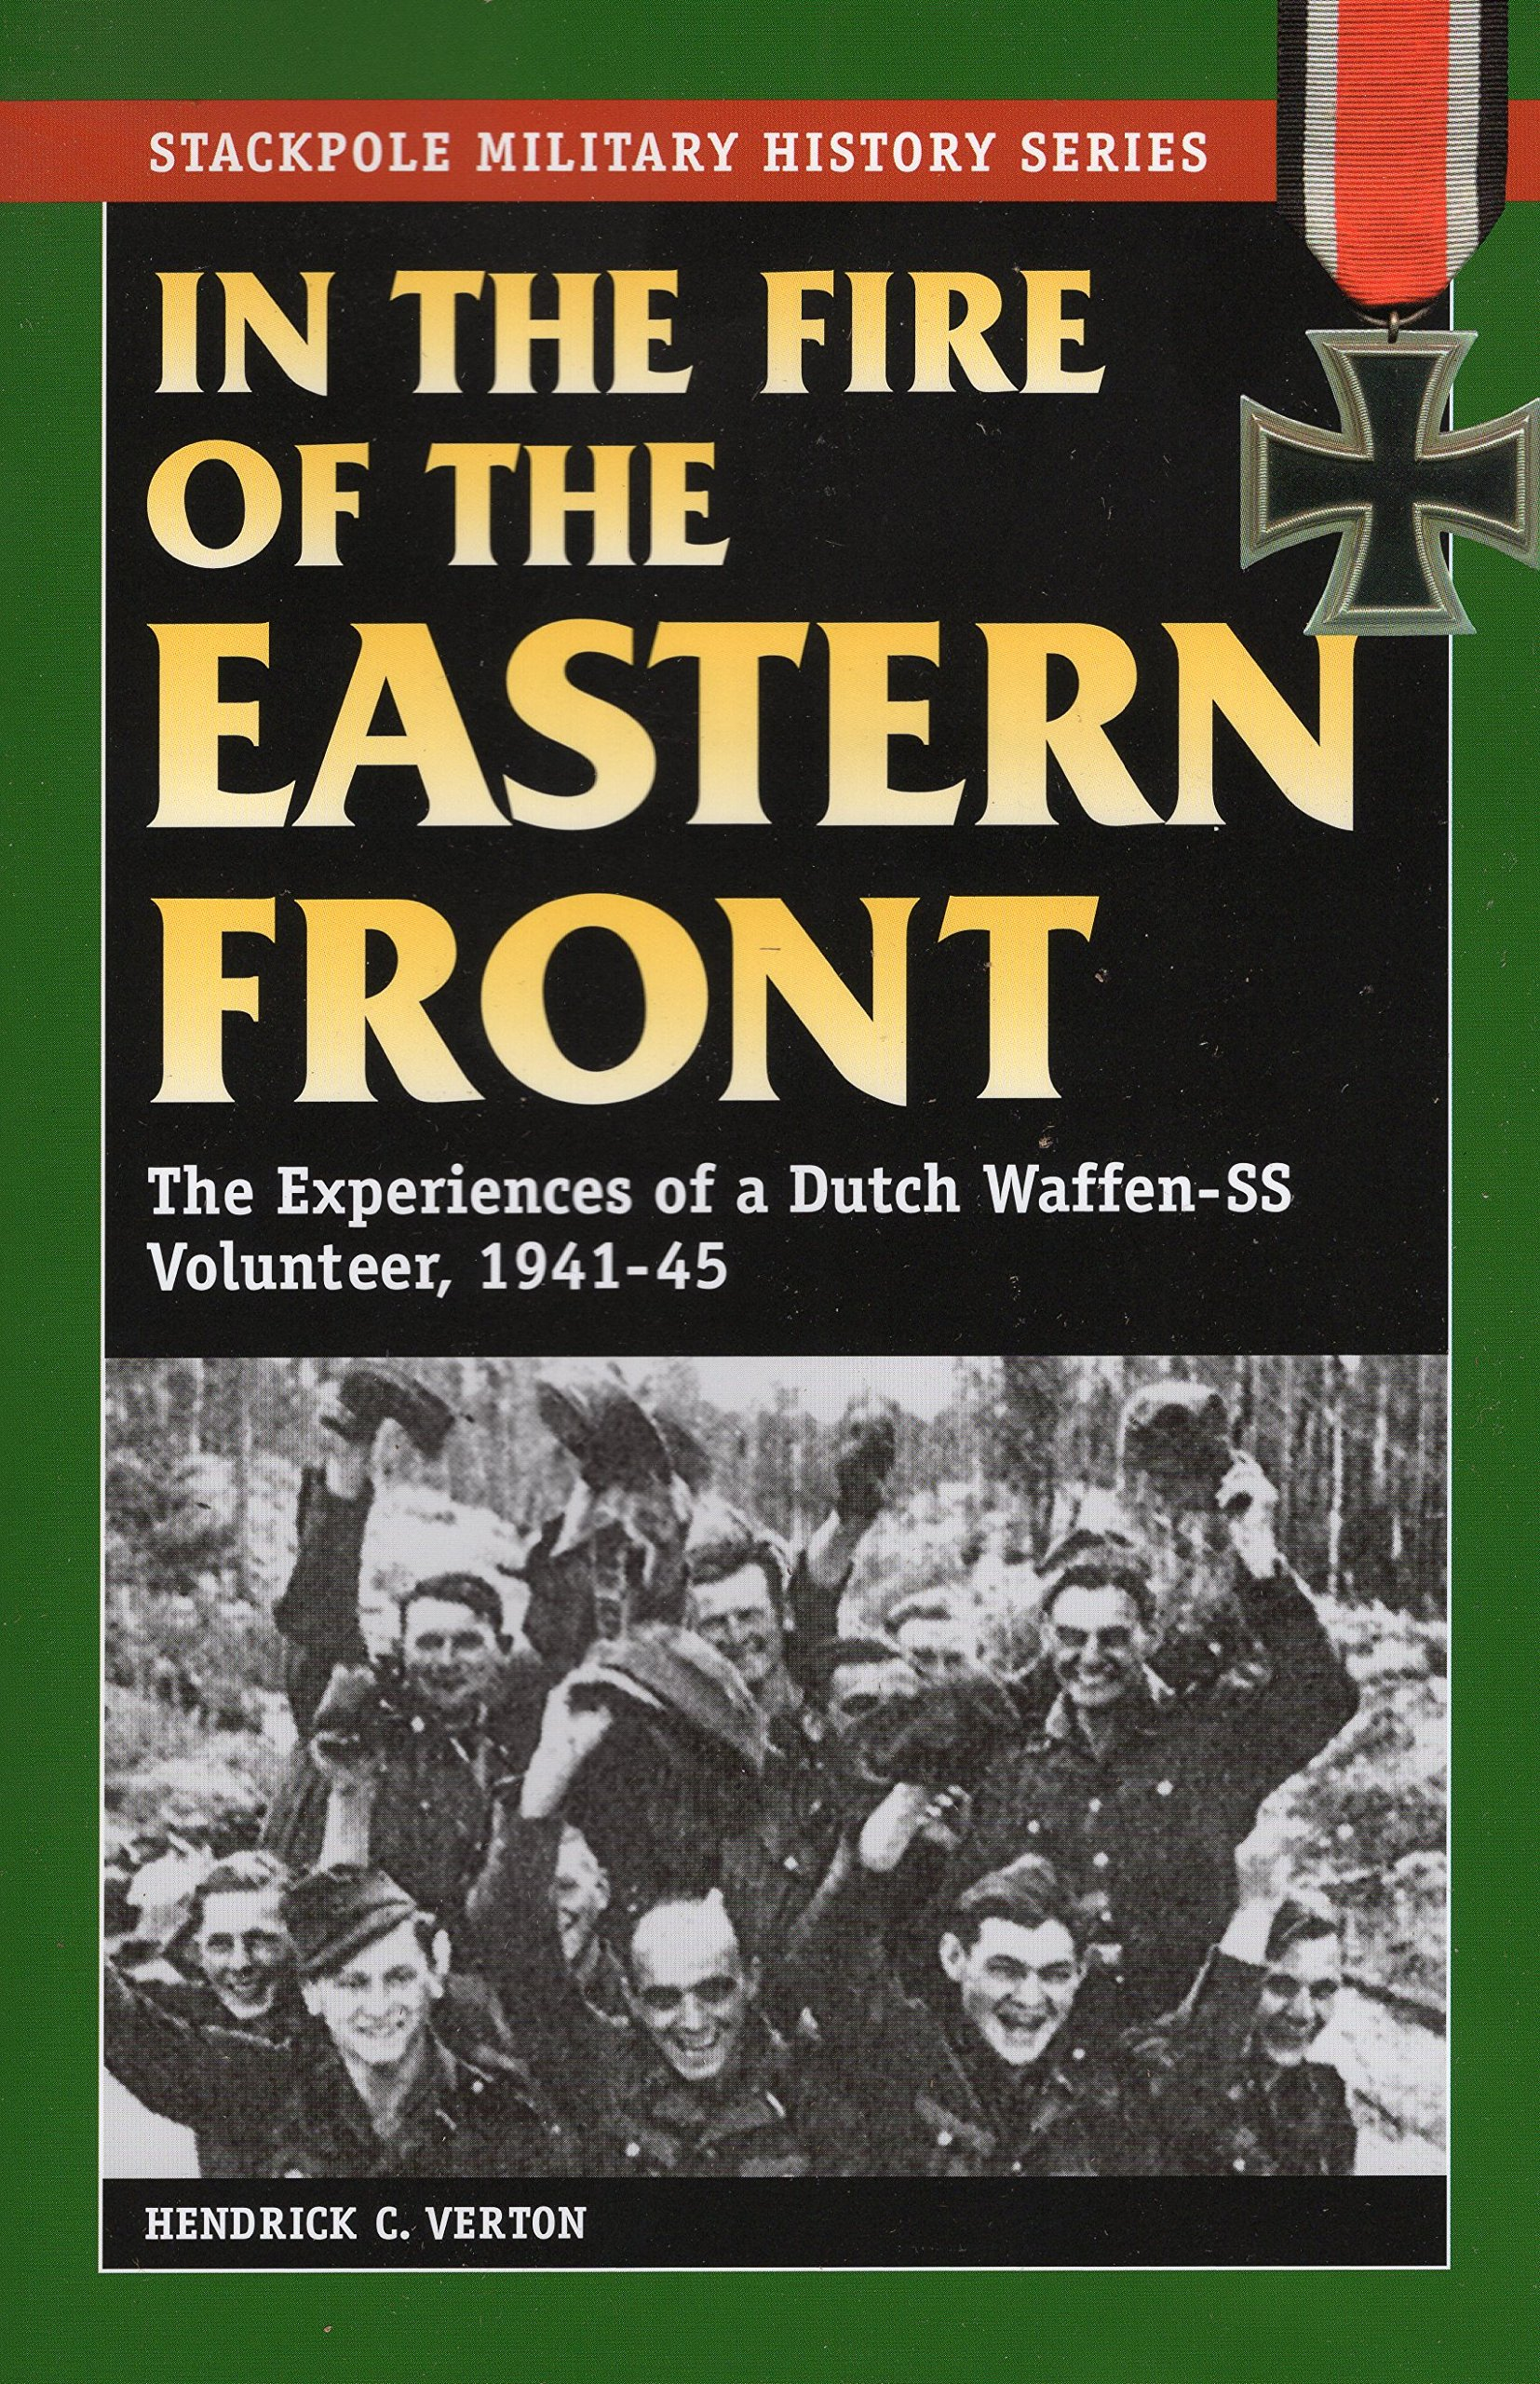 Read Online In the Fire of the Eastern Front: The Experiences of a Dutch Waffen-SS Volunteer, 1941-45 (Stackpole Military History Series) ebook